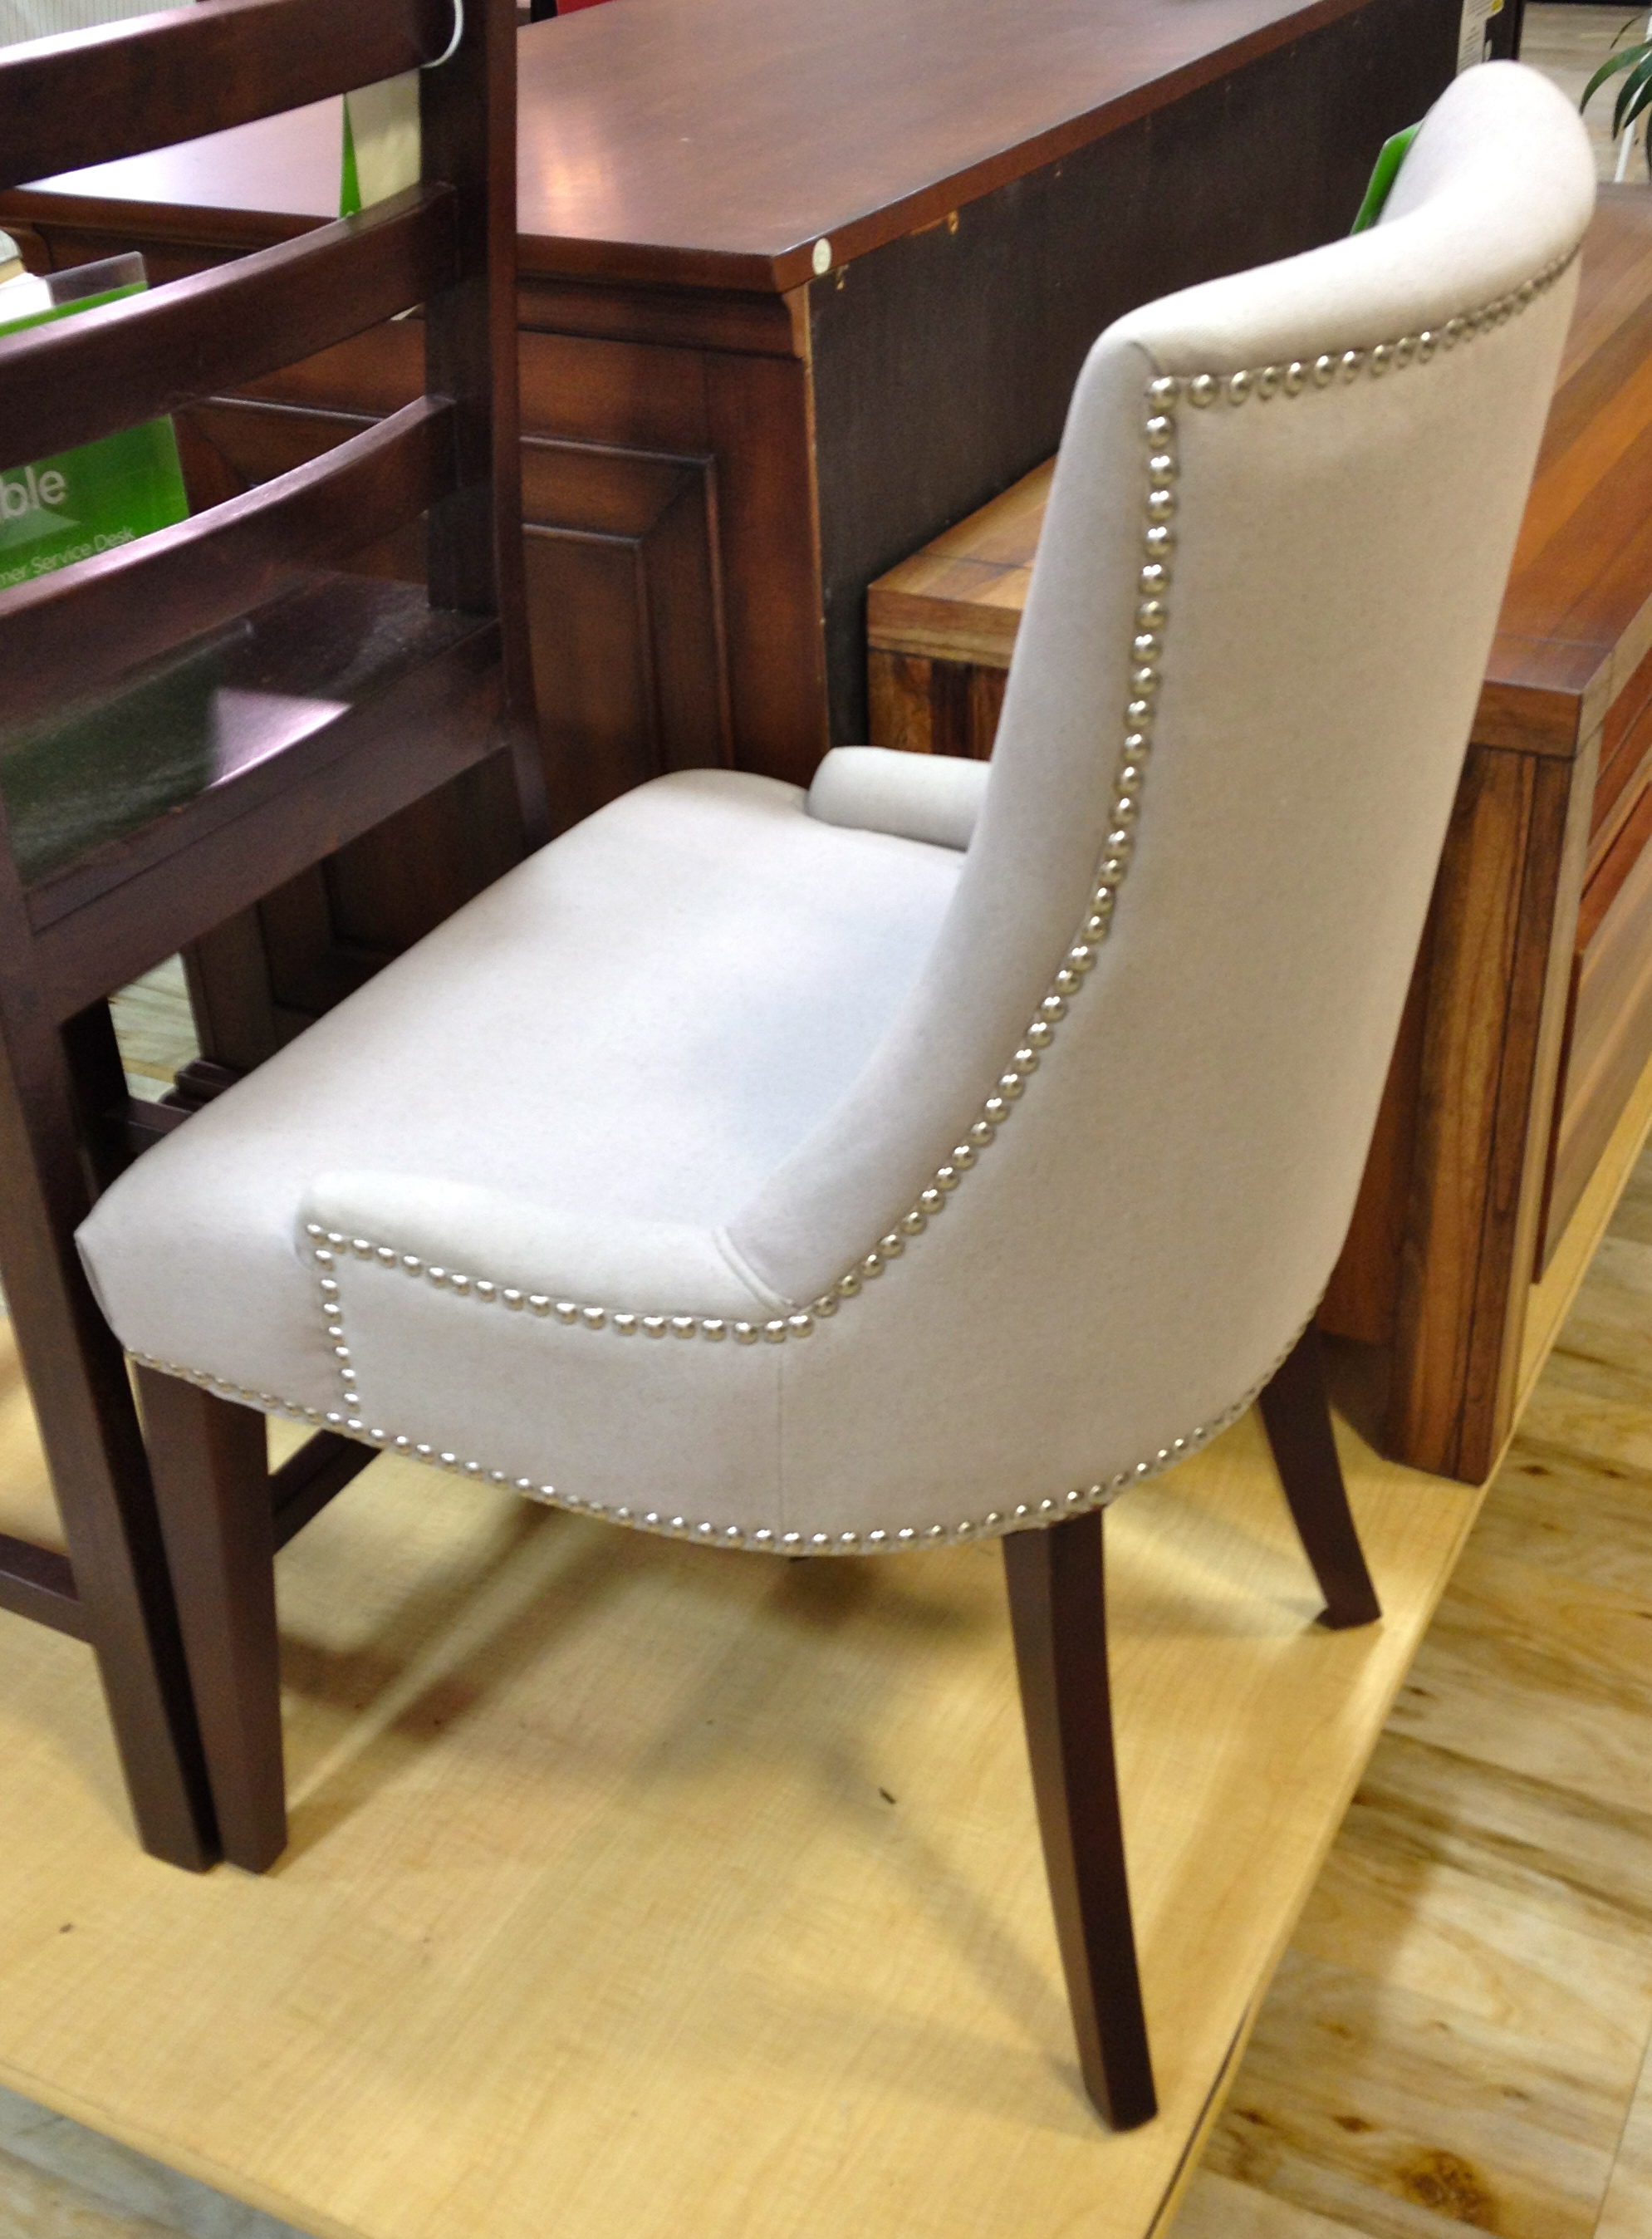 this chair is lovely i would classify this chair as an accent or